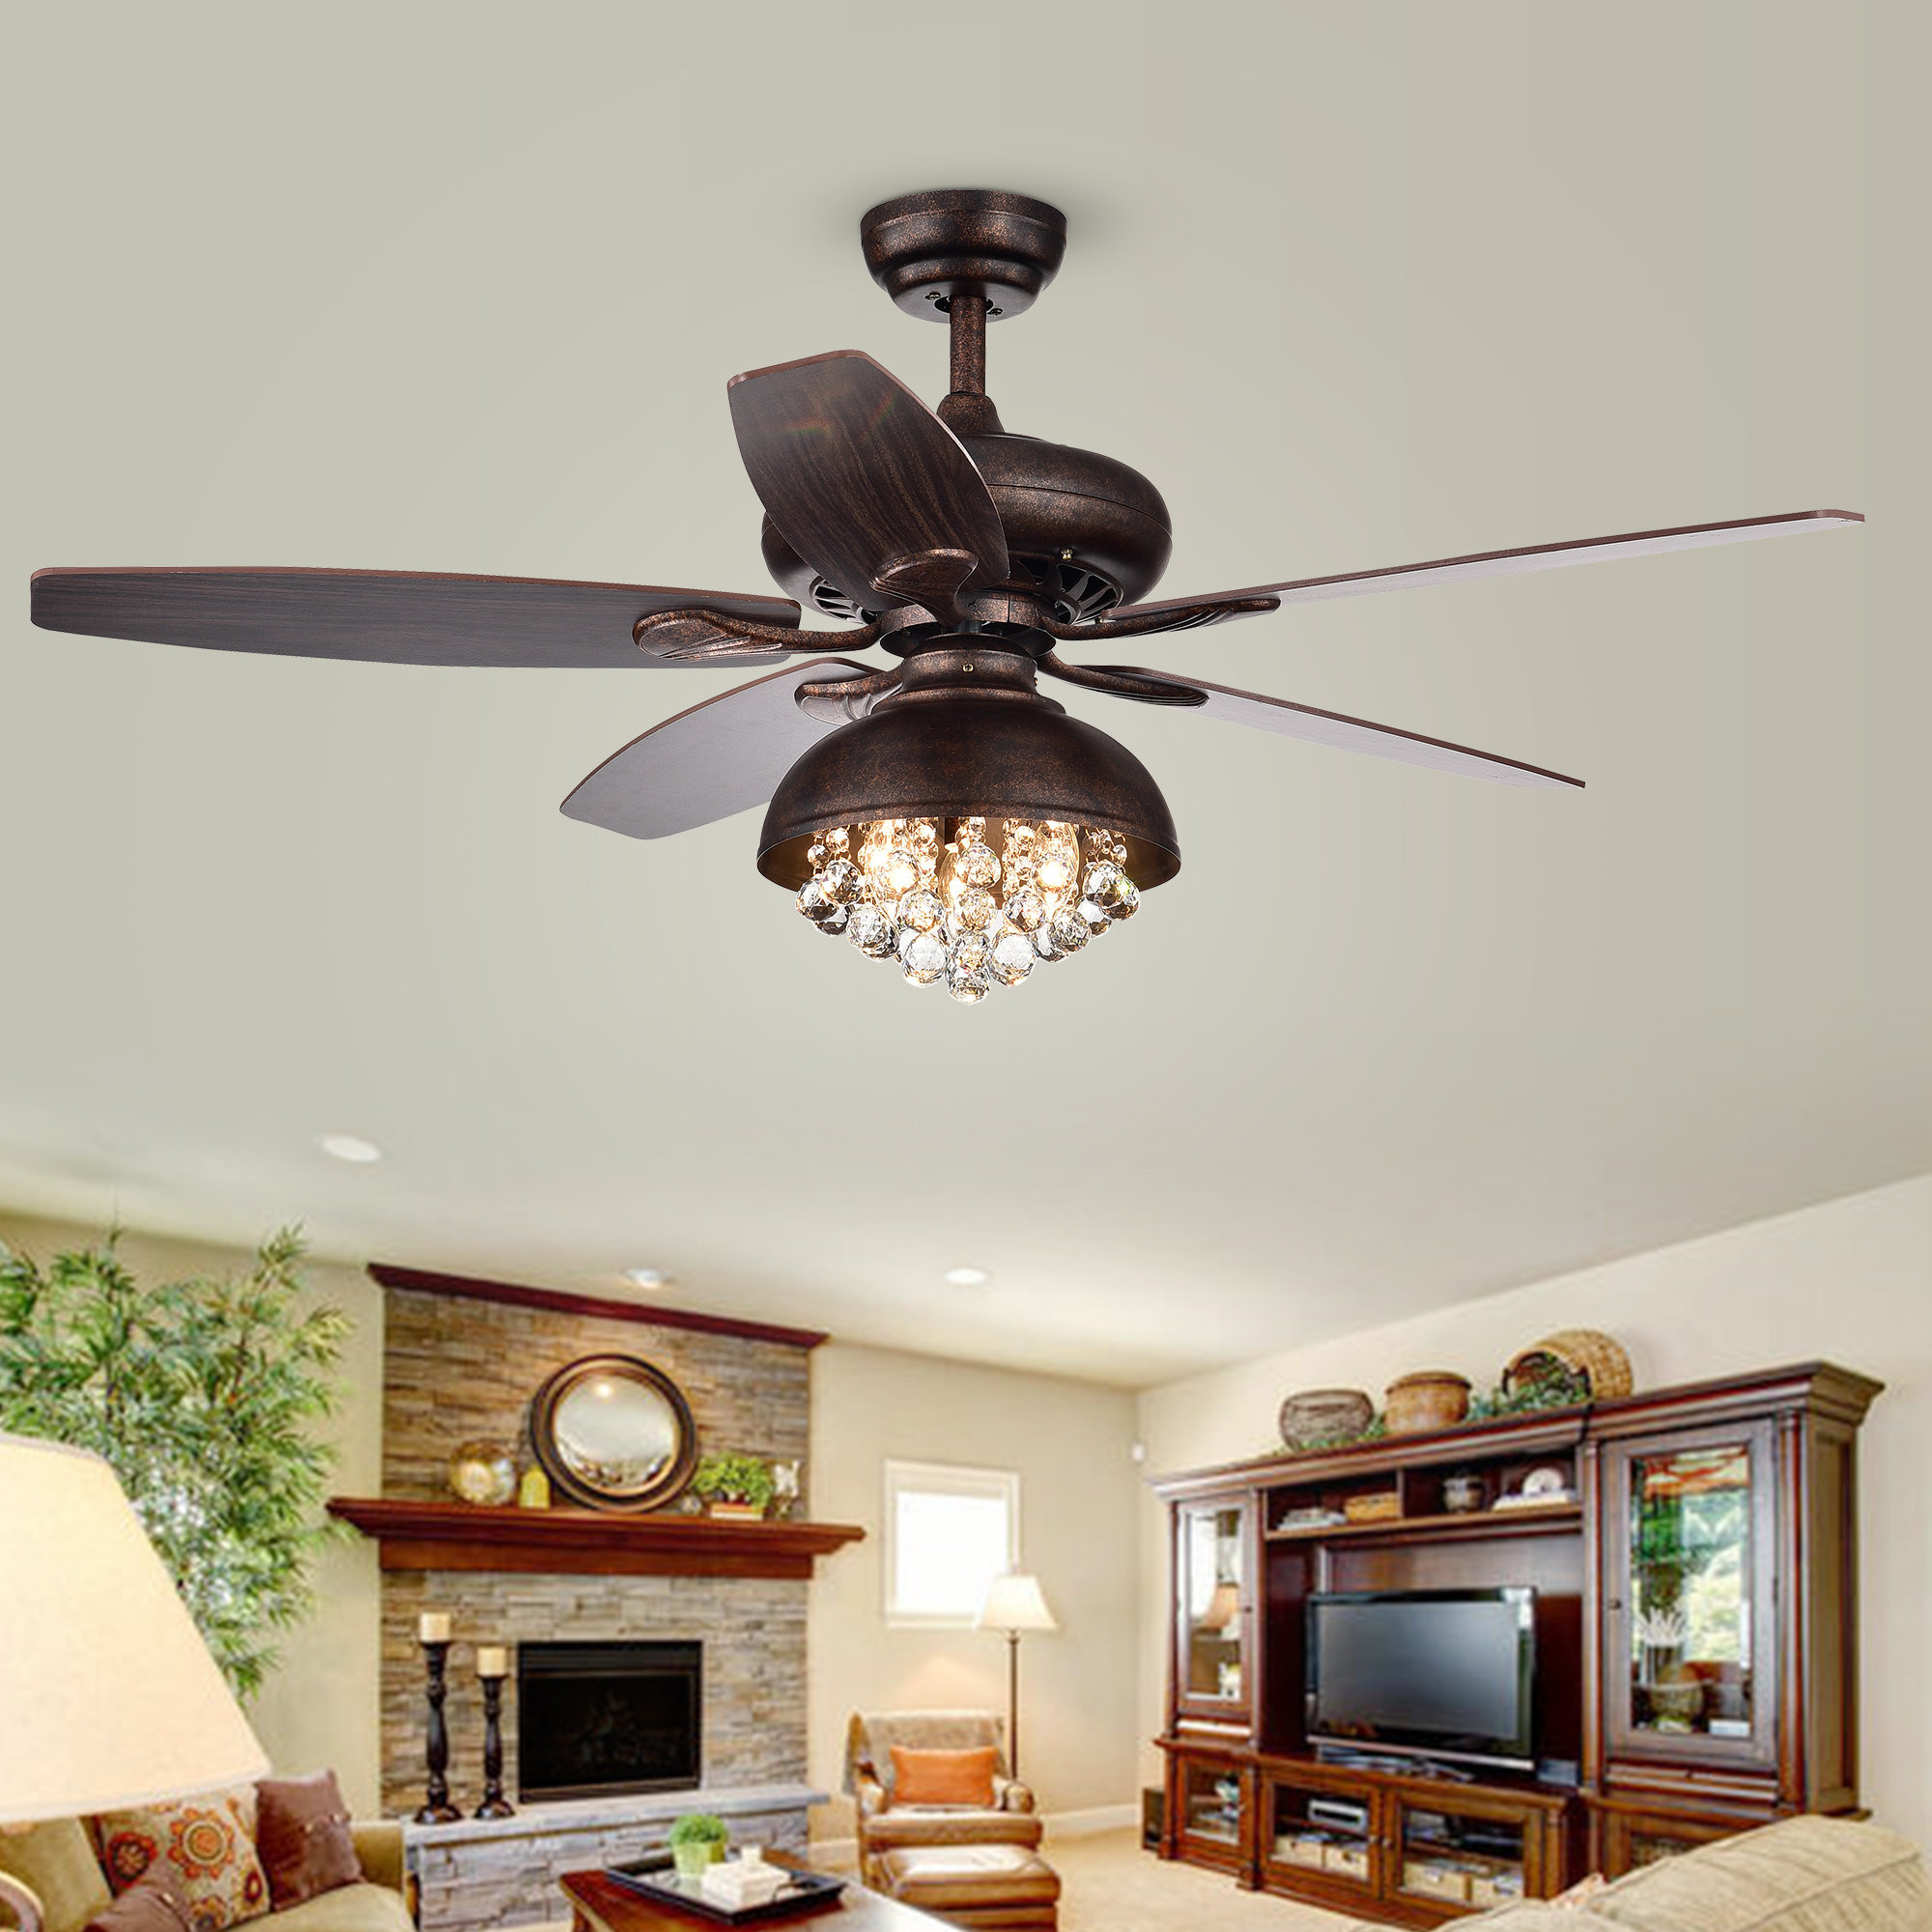 "52"" Davidson 5 Blade Ceiling Fan With Remote, Light Kit Included Within Latest Mattias 5 Blade Ceiling Fans (View 3 of 20)"